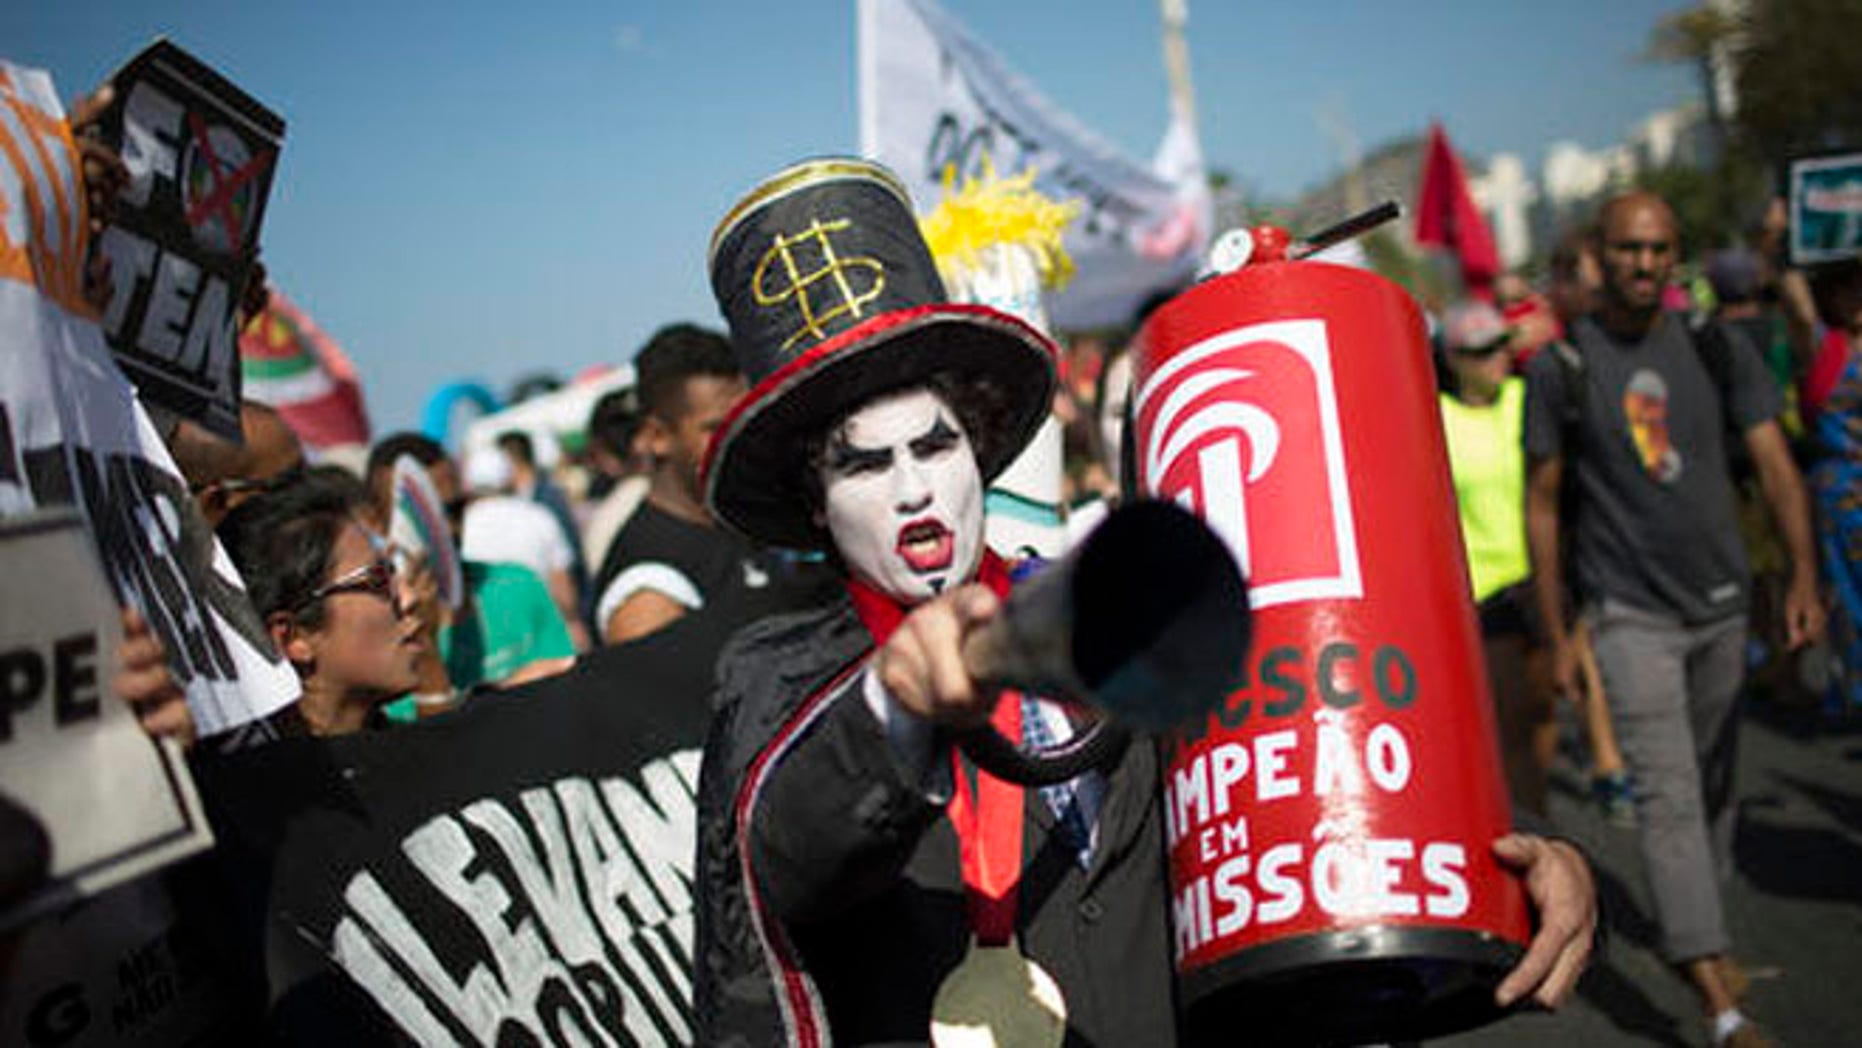 "A demonstrator in a costume depicting a banker and holding a replica of a fire extinguisher for putting out the ""flame"" of an imitation Olympic torch, takes part in a protest against the interim Brazilian president Michel Temer, and the Rio's 2016 Summer Olympics, on the route of the Olympic torch, at the Copacabana beach, in Rio de Janeiro, Brazil, Friday, Aug. 5, 2016. (AP Photo/Leo Correa)"